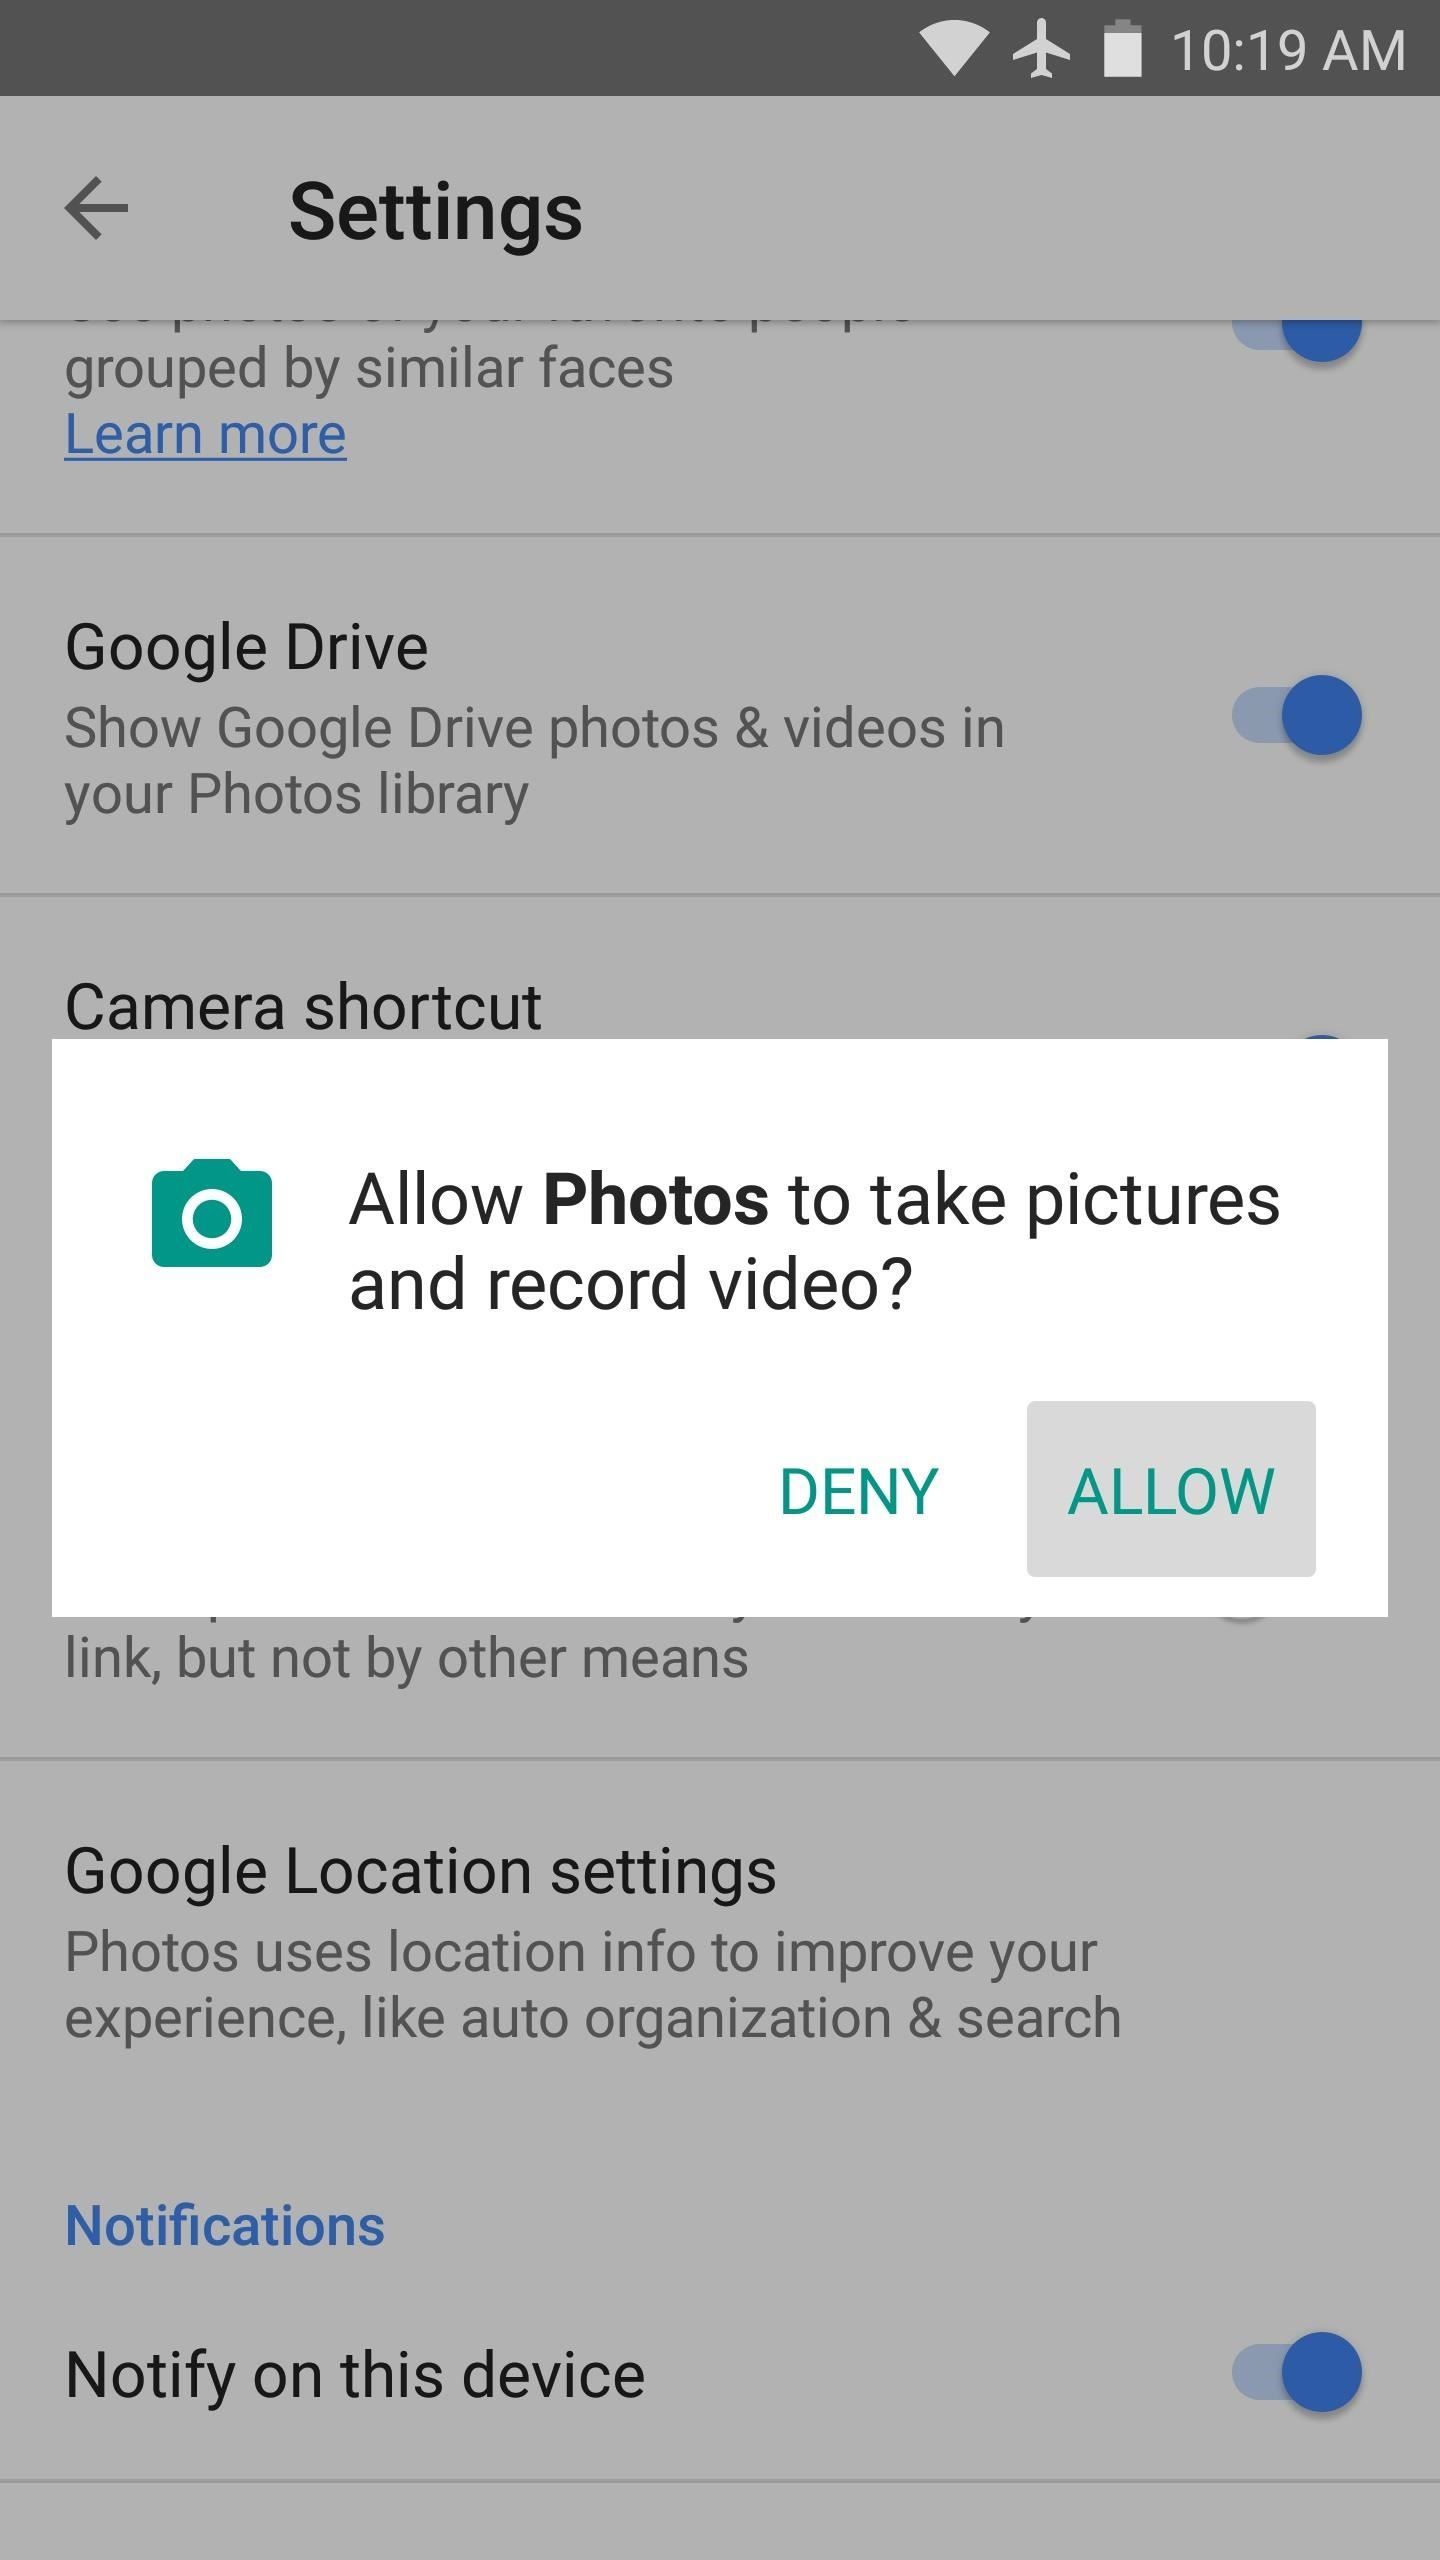 How to Add a Google Photos Shortcut to Your Android's Camera App